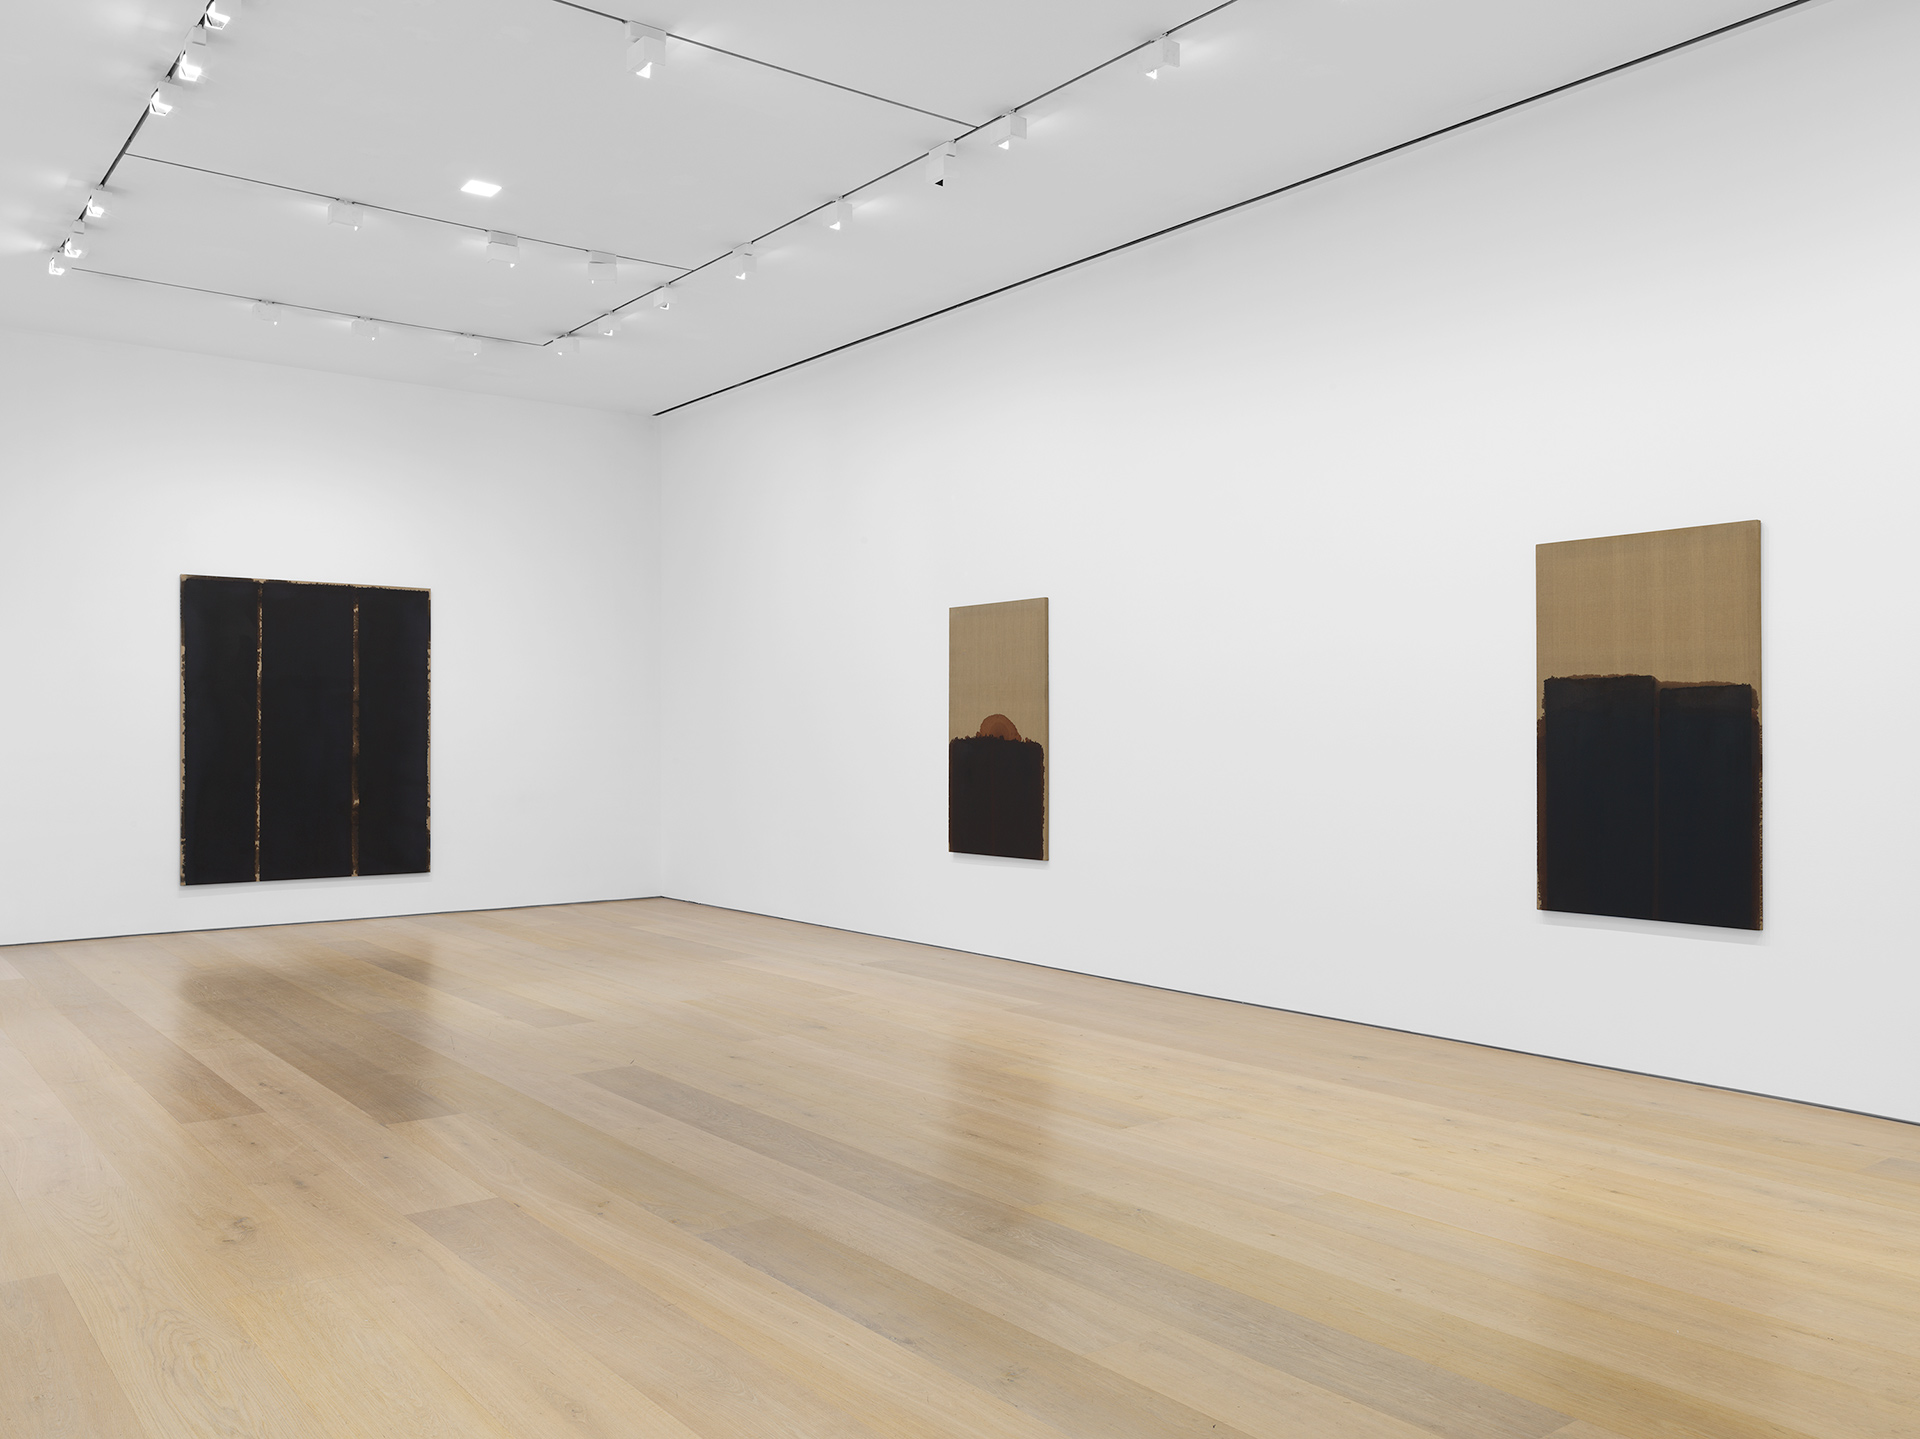 An installation view of an exhibition of paintings by Yun Hyong-keun at David Zwirner, New York, in 2020.